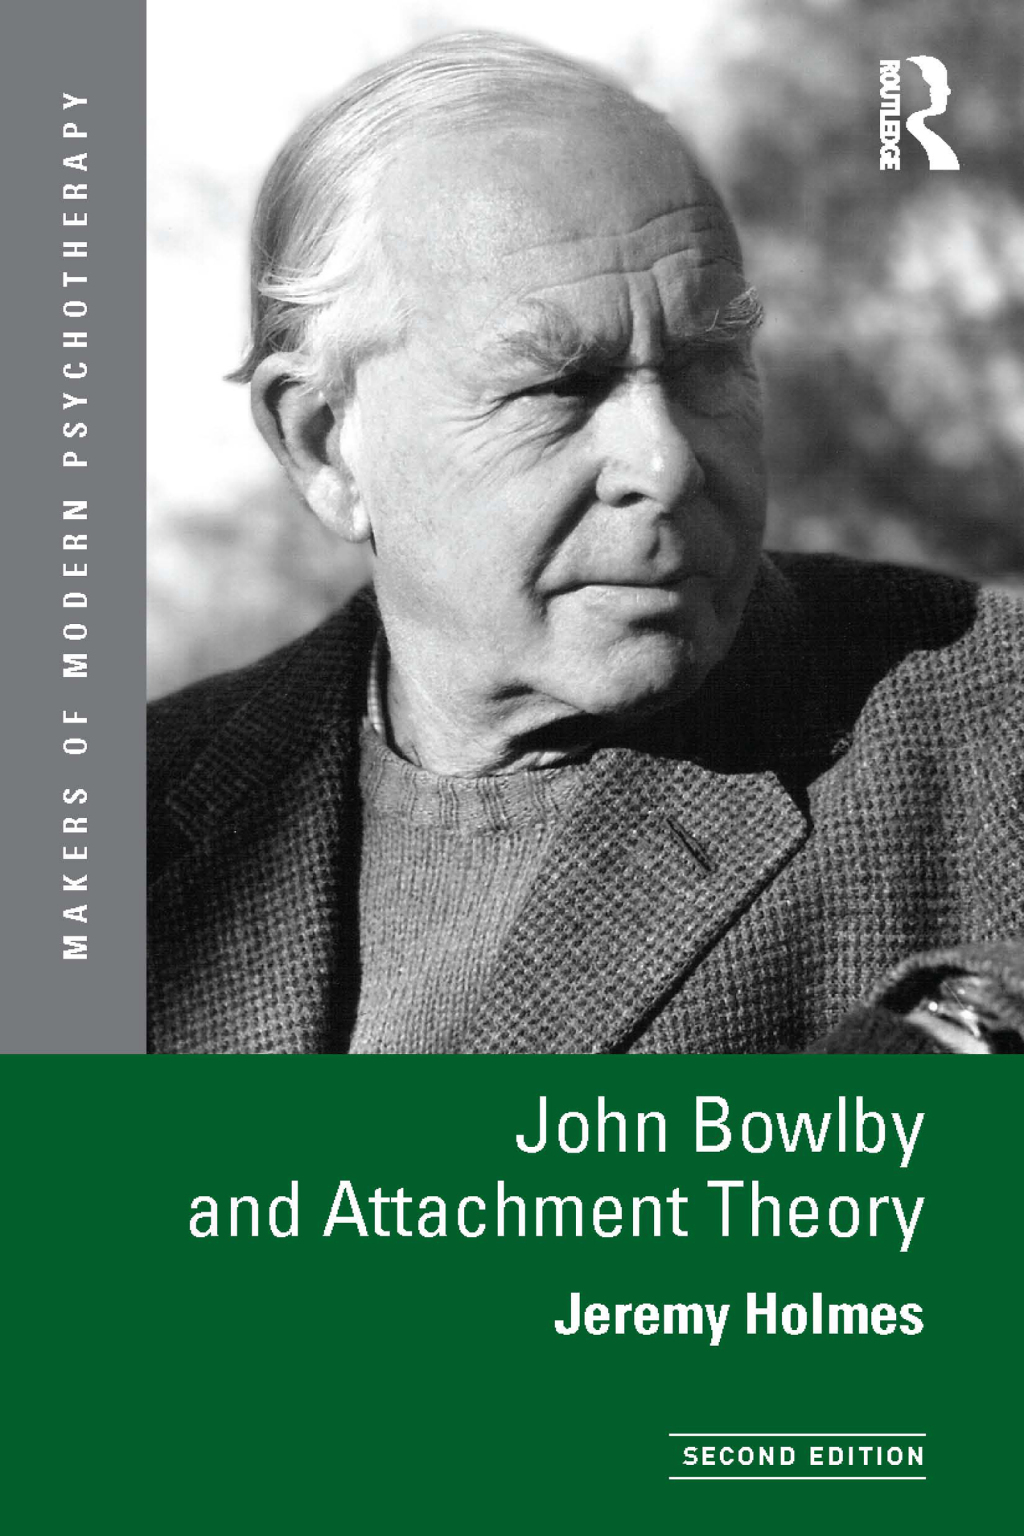 John Bowlby and Attachment Theory (ebook) eBooks